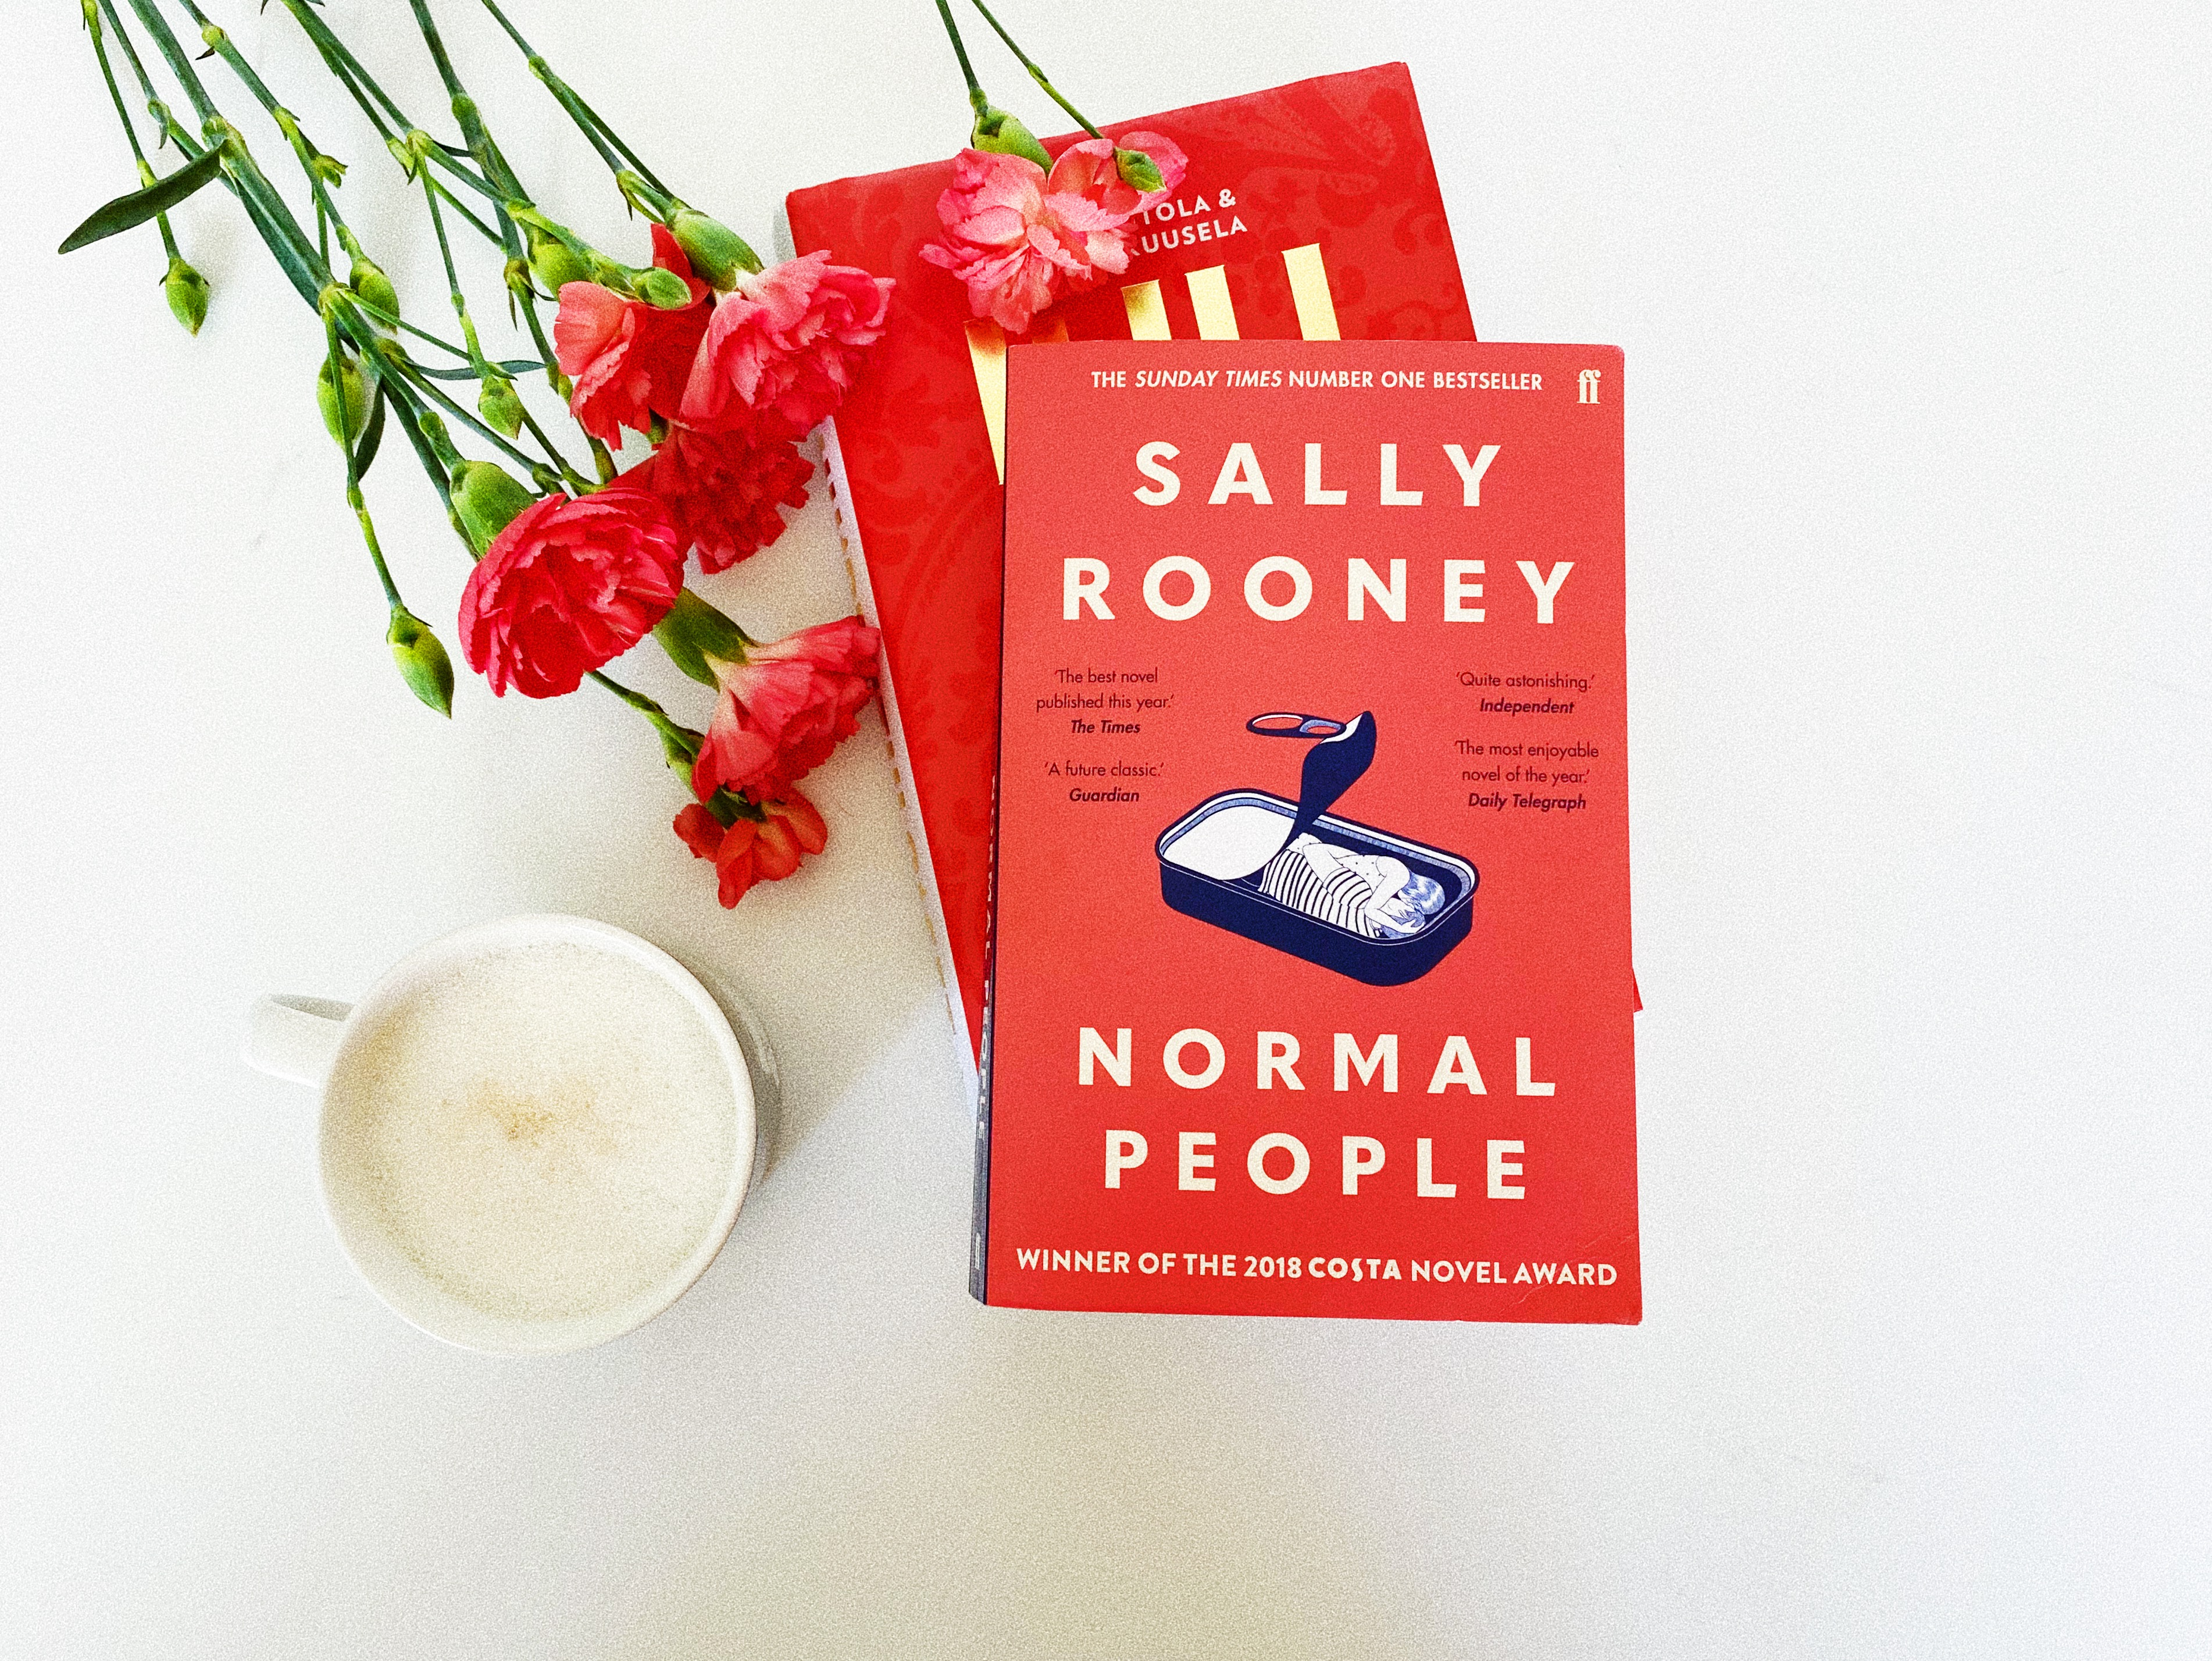 Sally Rooney – Normal people